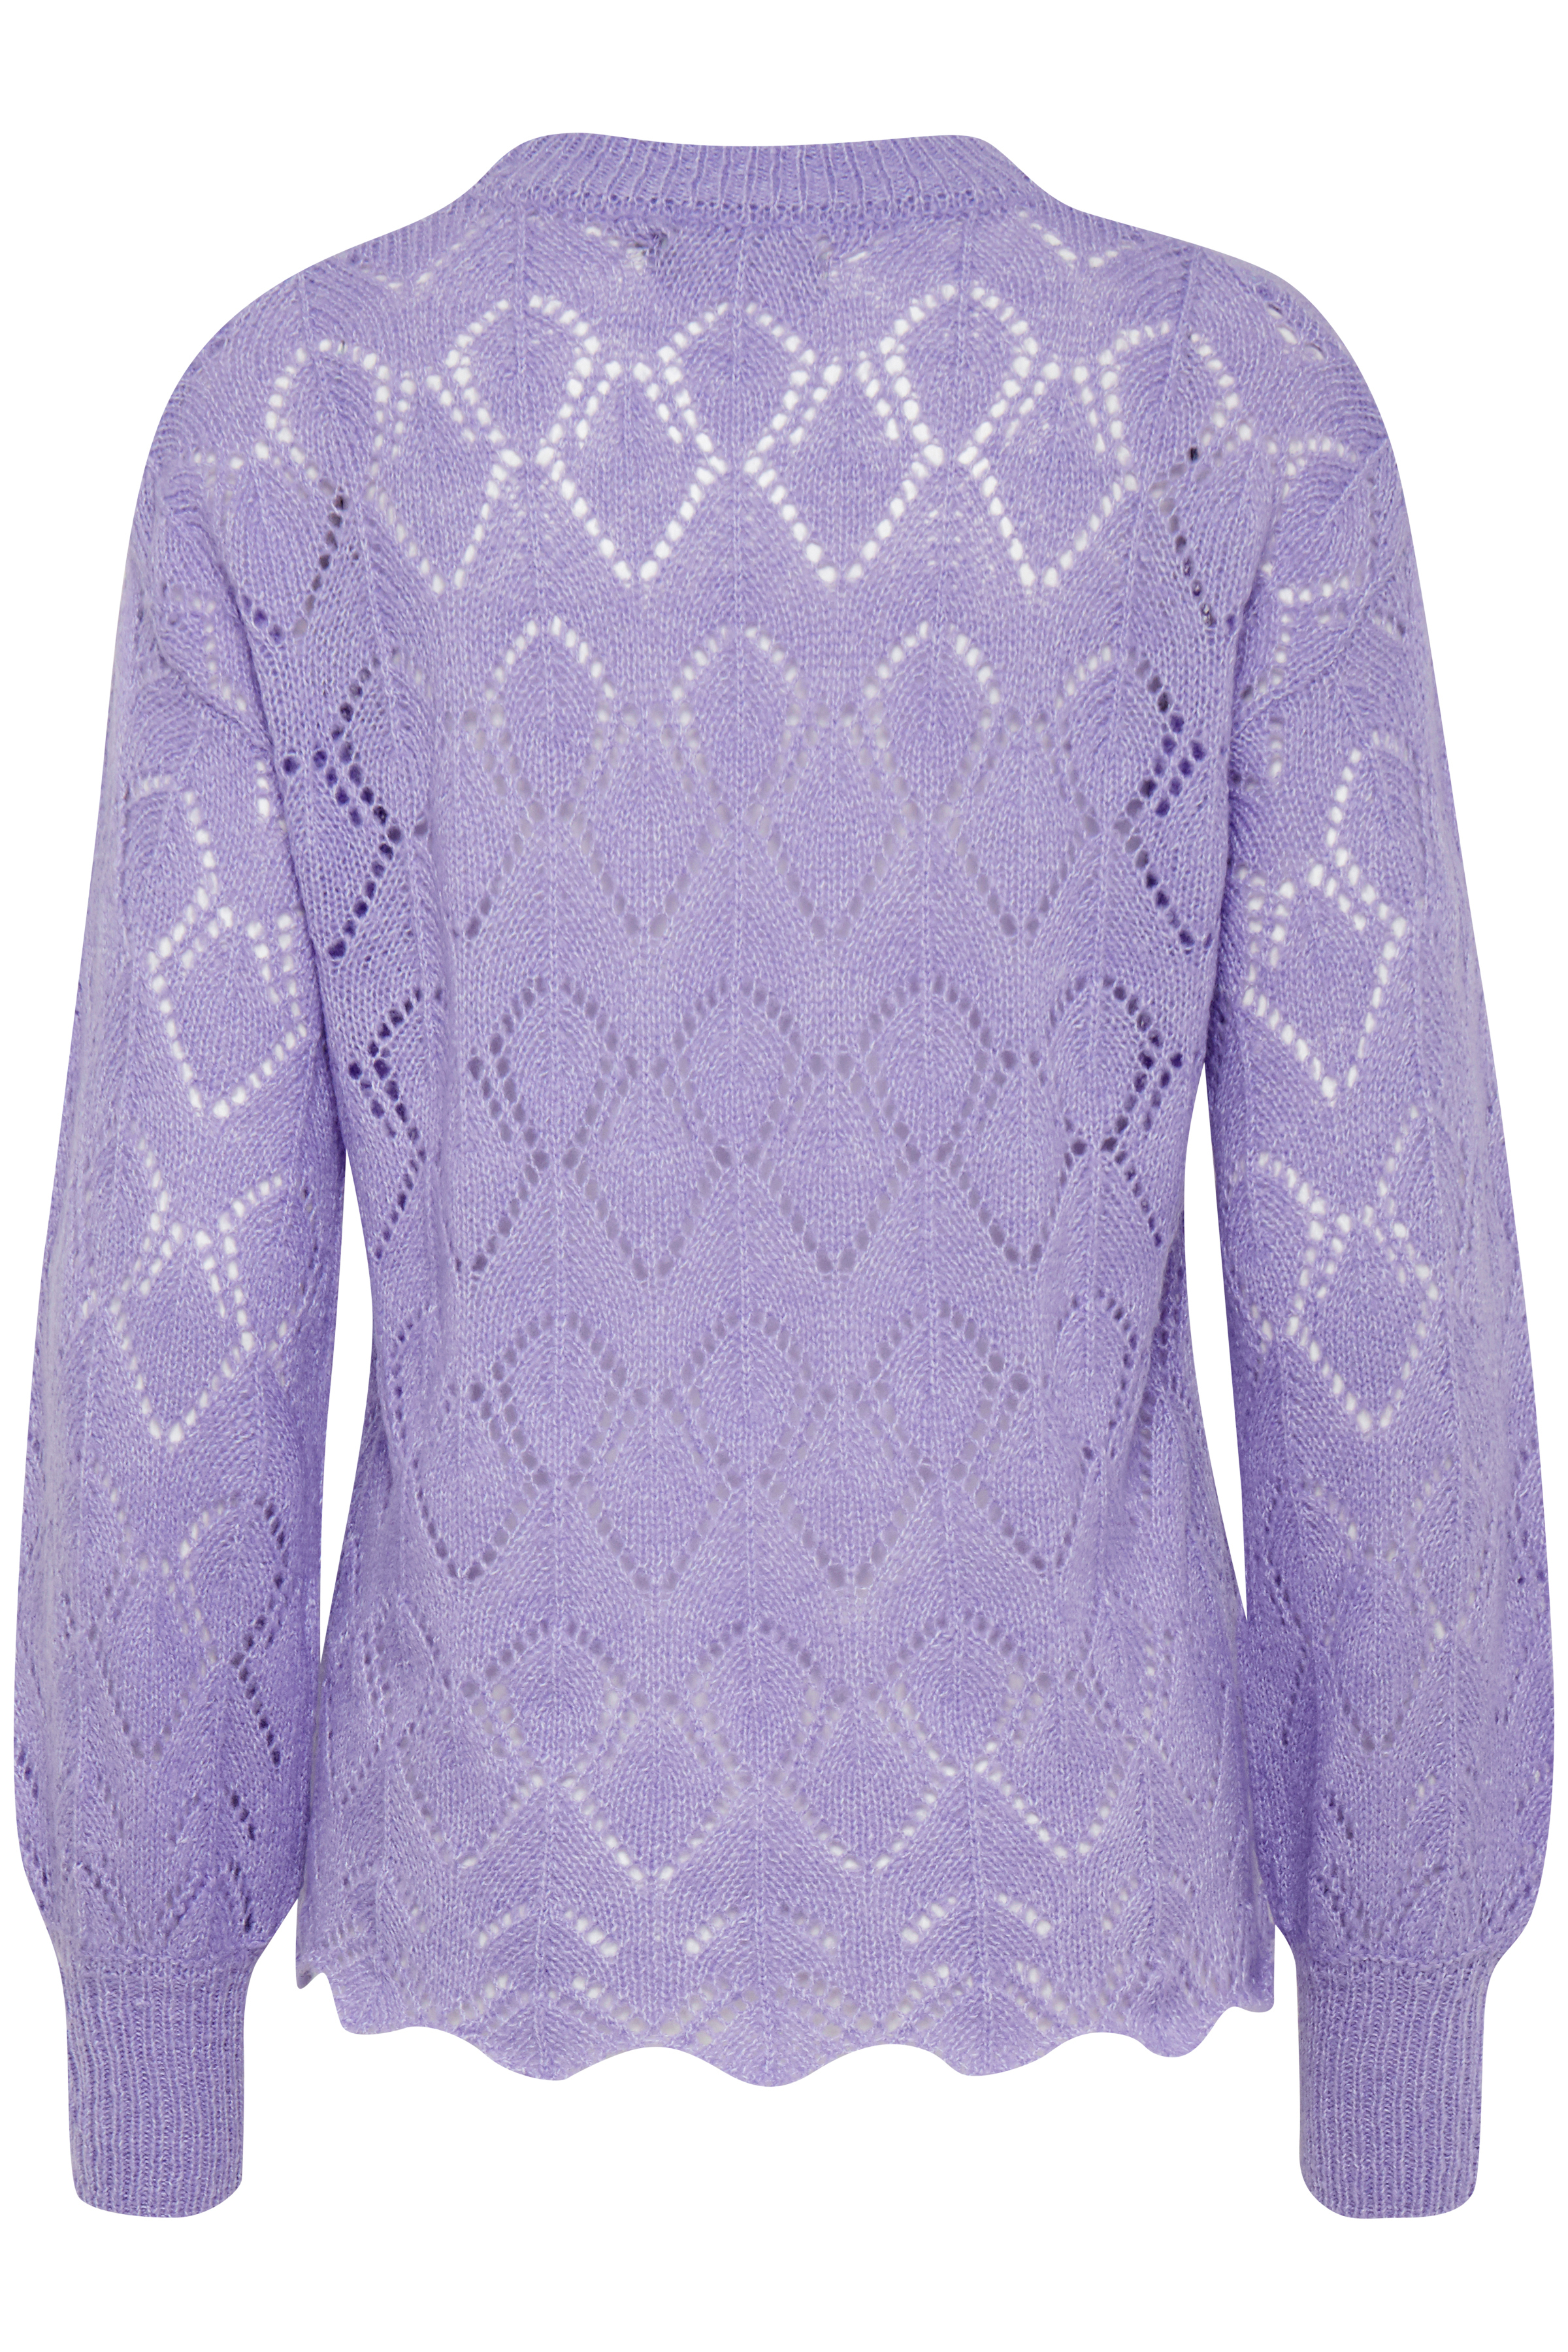 Violet Tulip Mel. Knitted pullover from b.young – Buy Violet Tulip Mel. Knitted pullover from size XS-XXL here